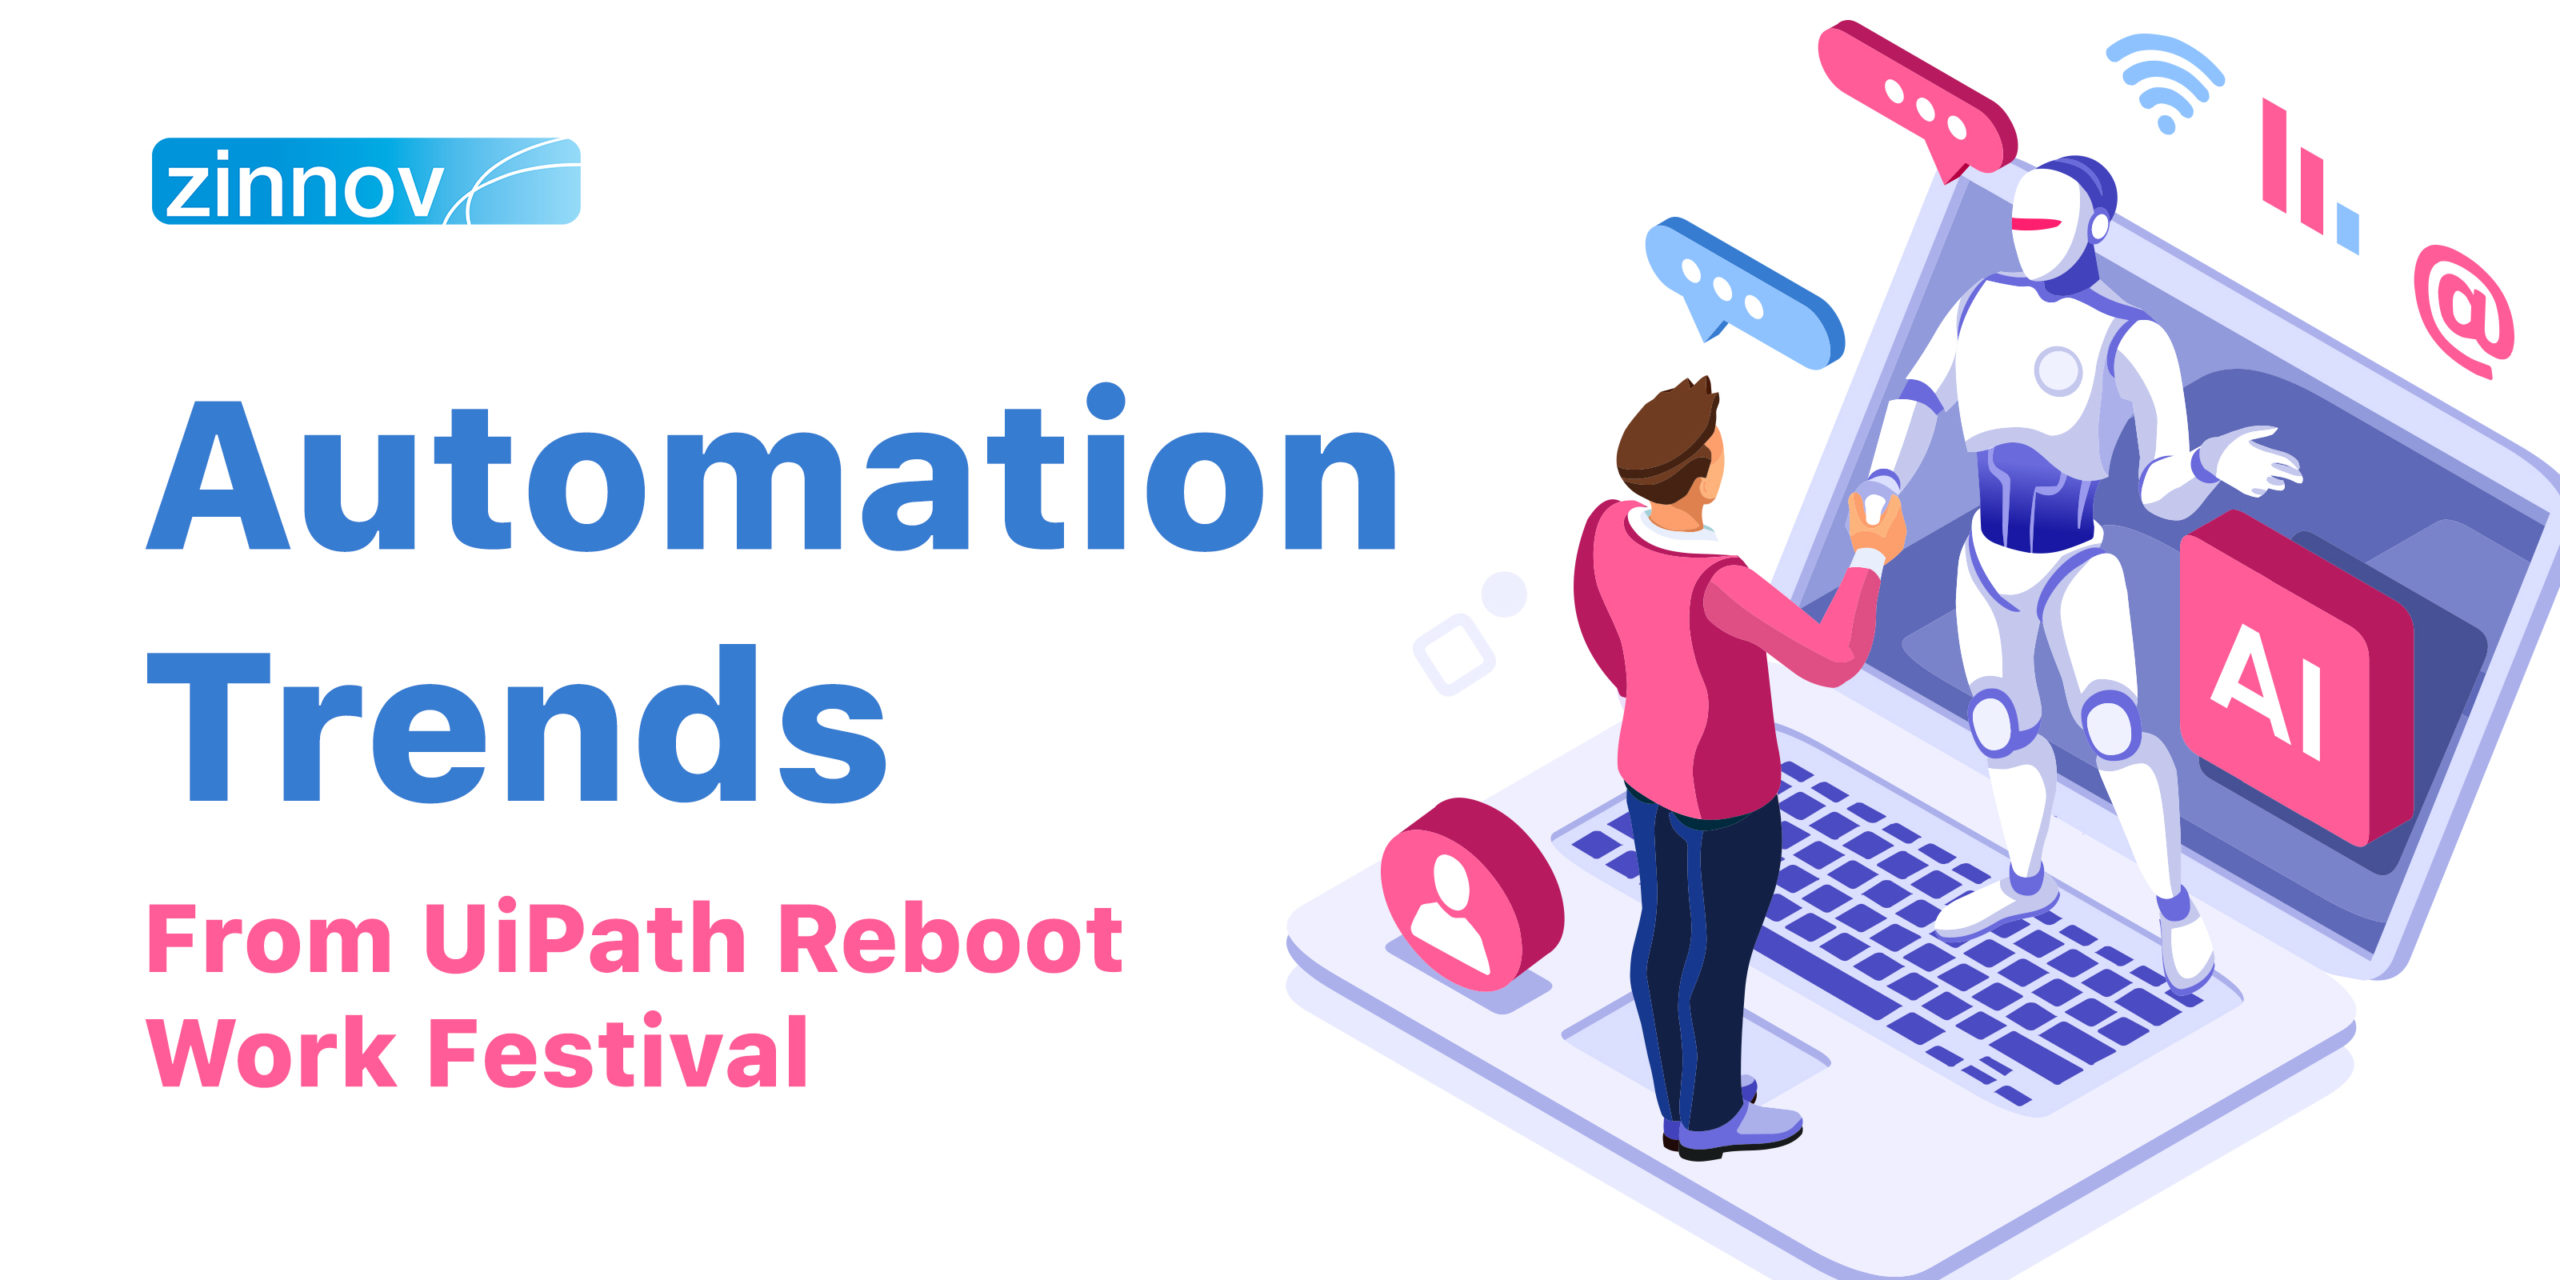 Key Automation Trends That We Gleaned At The UiPath Reboot Work Festival